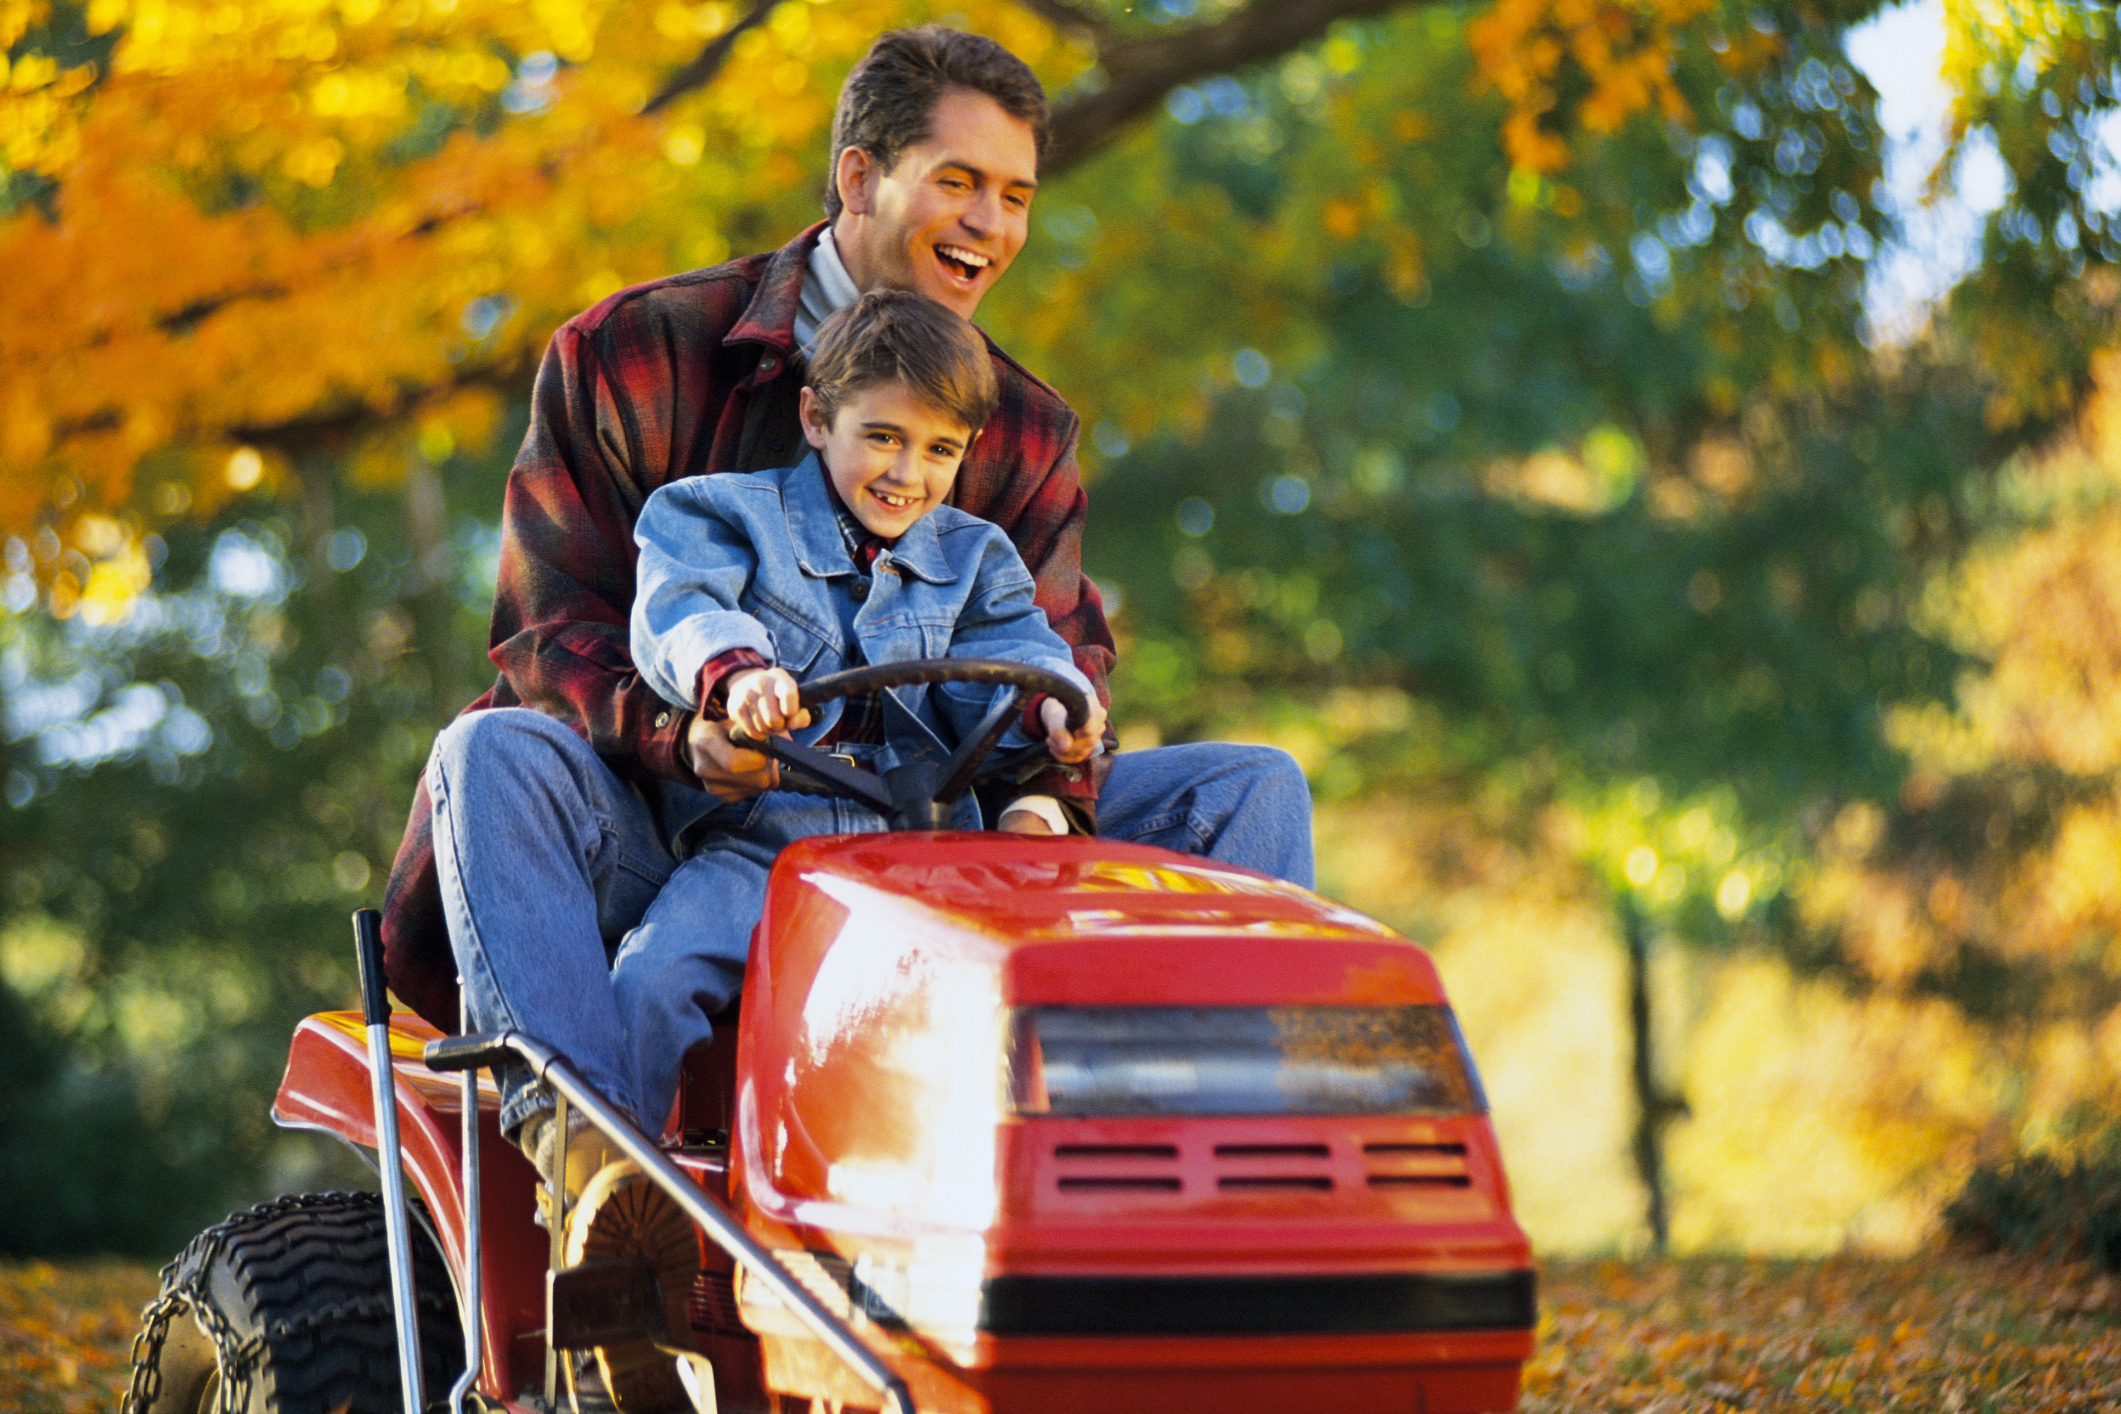 How to Install Lights on a Mower | Garden Guides